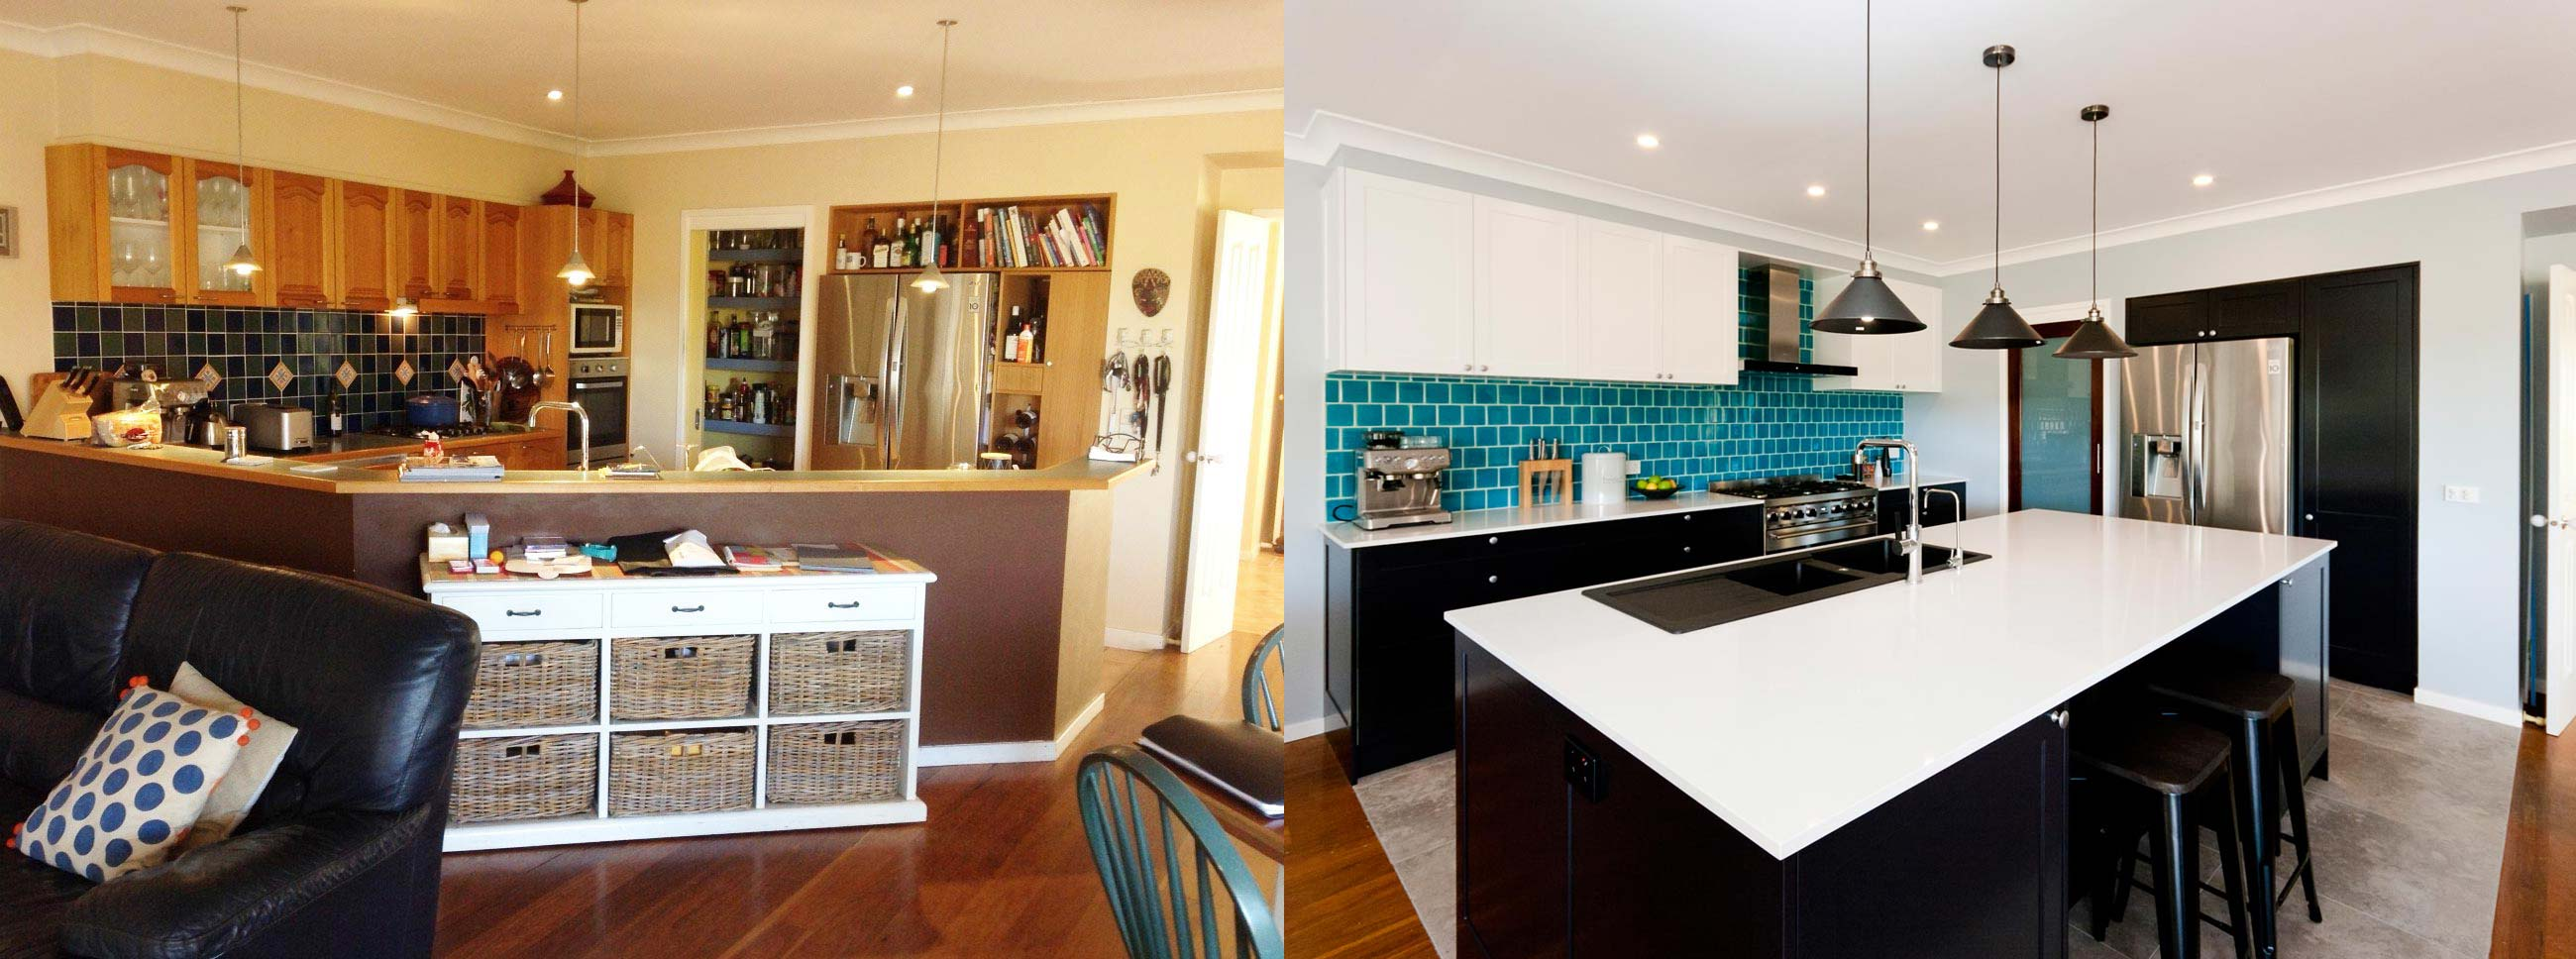 kitchen design before after kitchen renovation black white